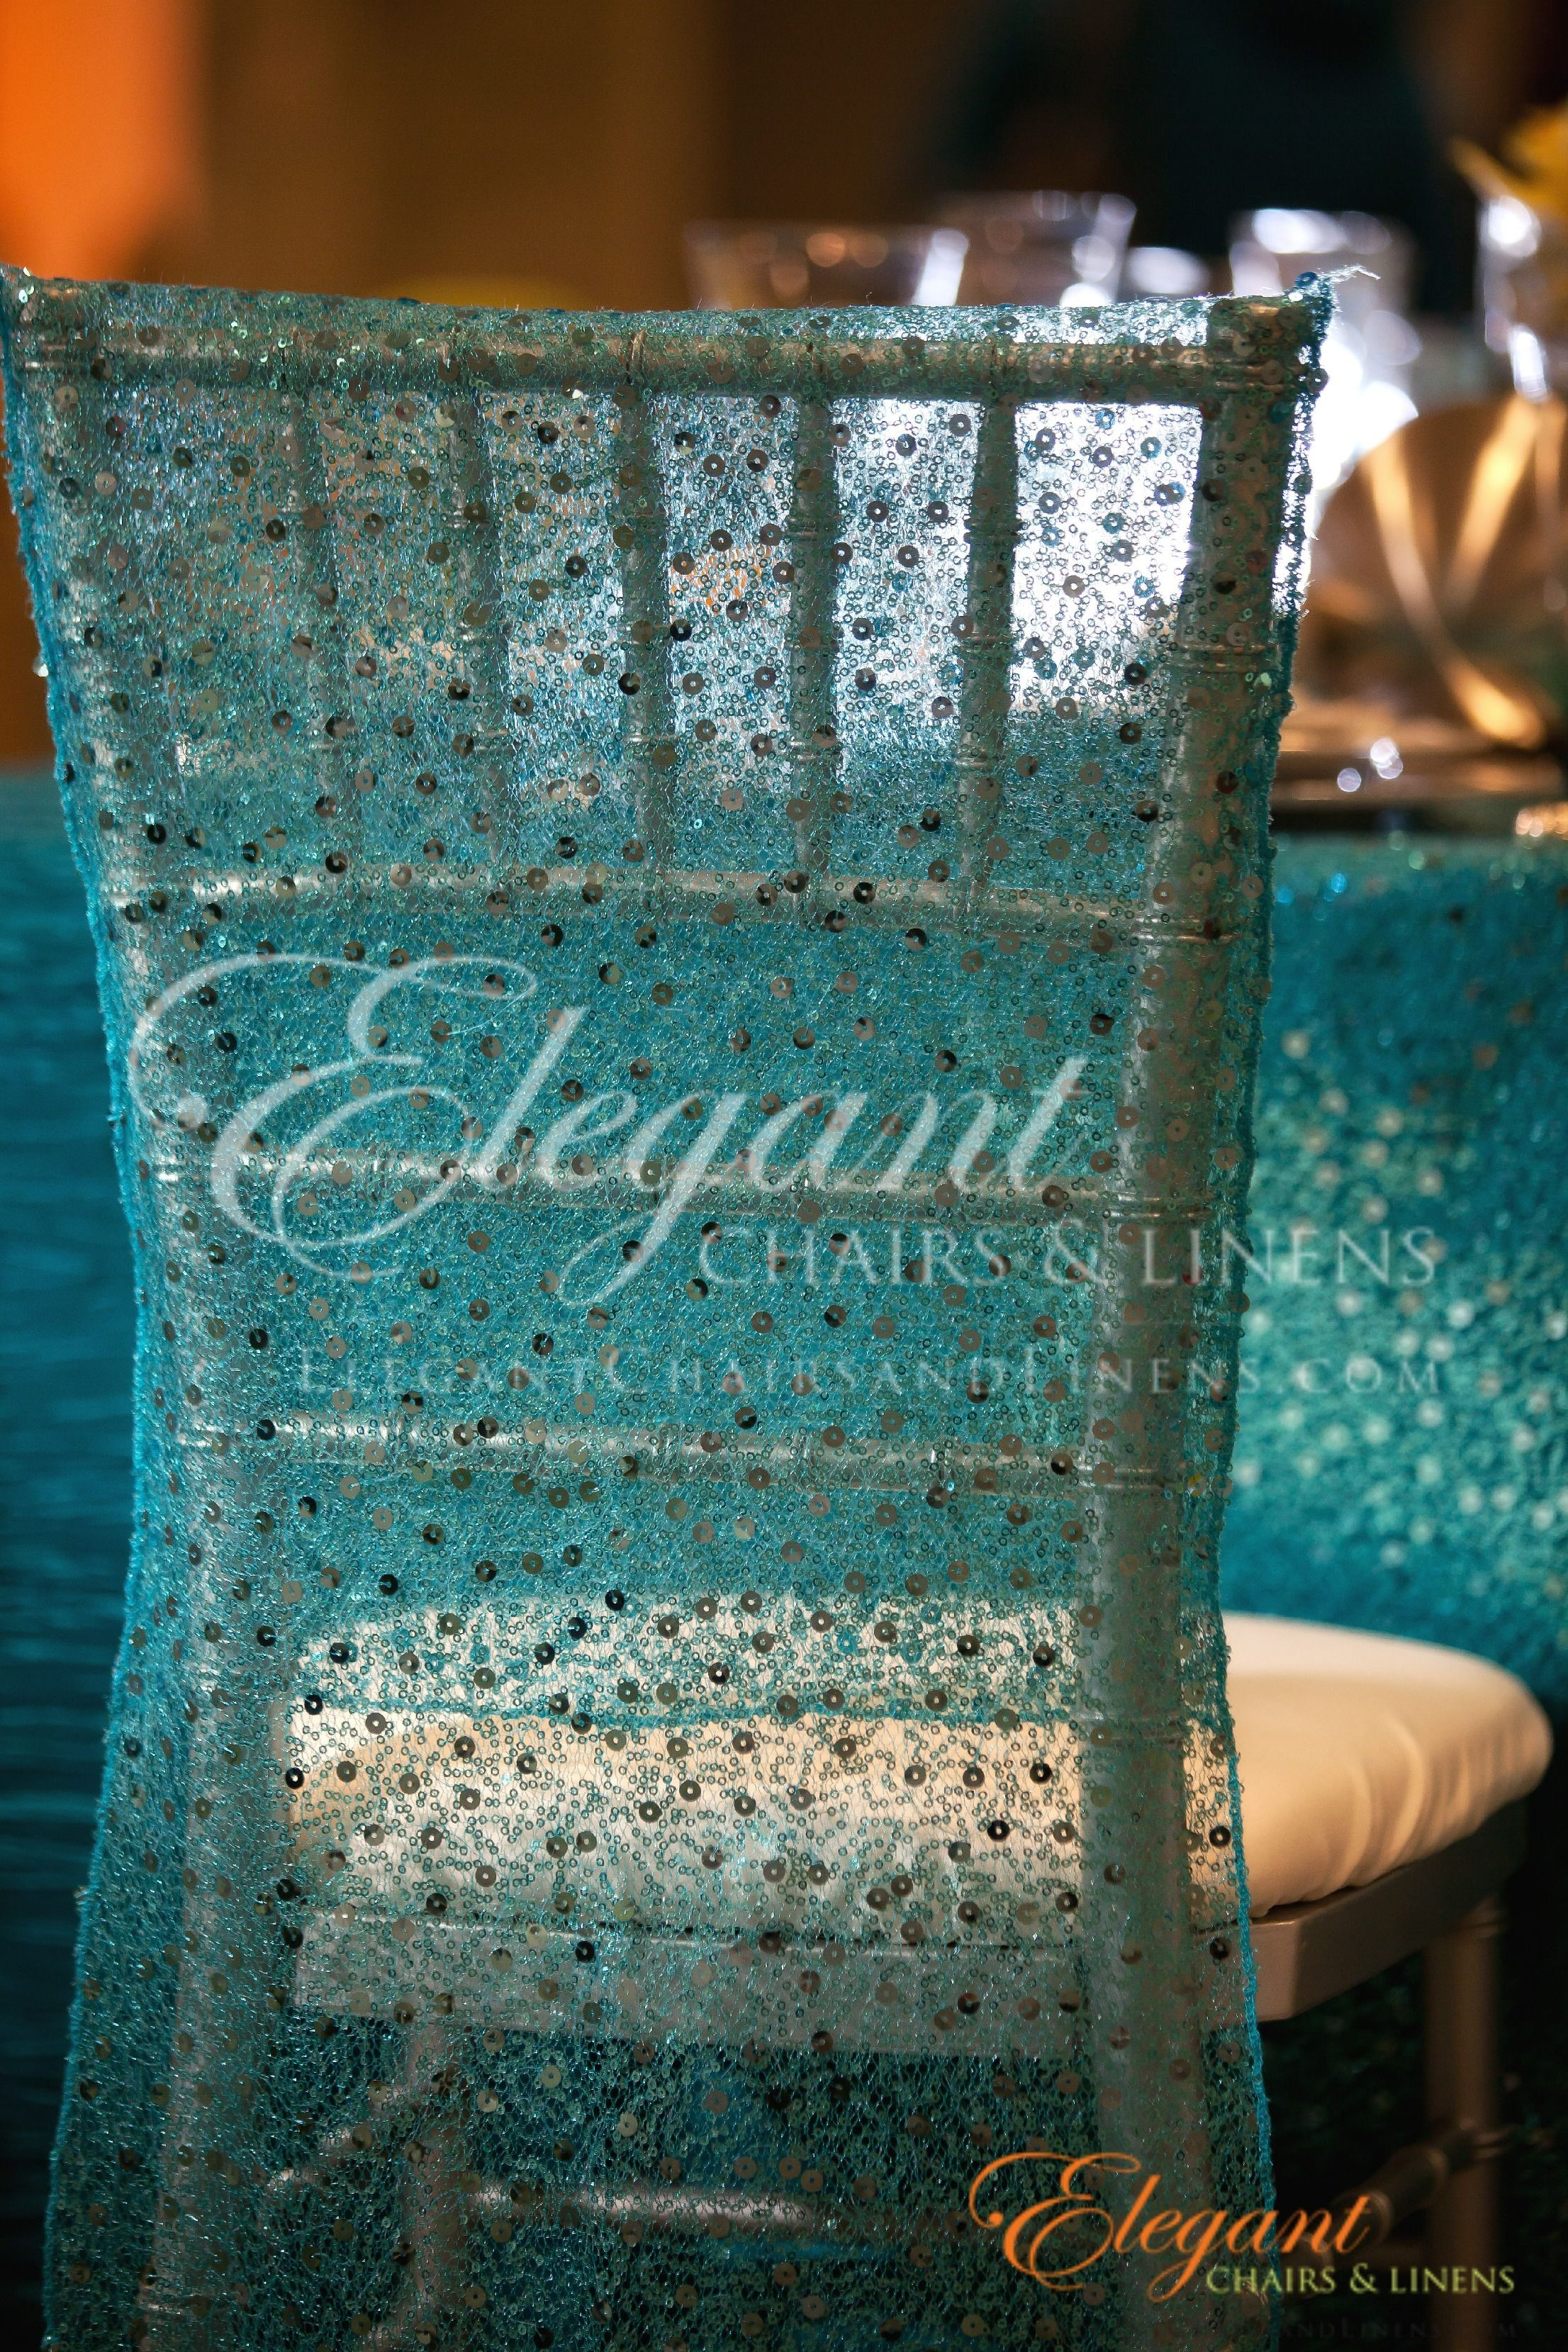 Chair Rental Atlanta Wedding And Event Linens In Atlanta Ga Linens And Chiavari Chair